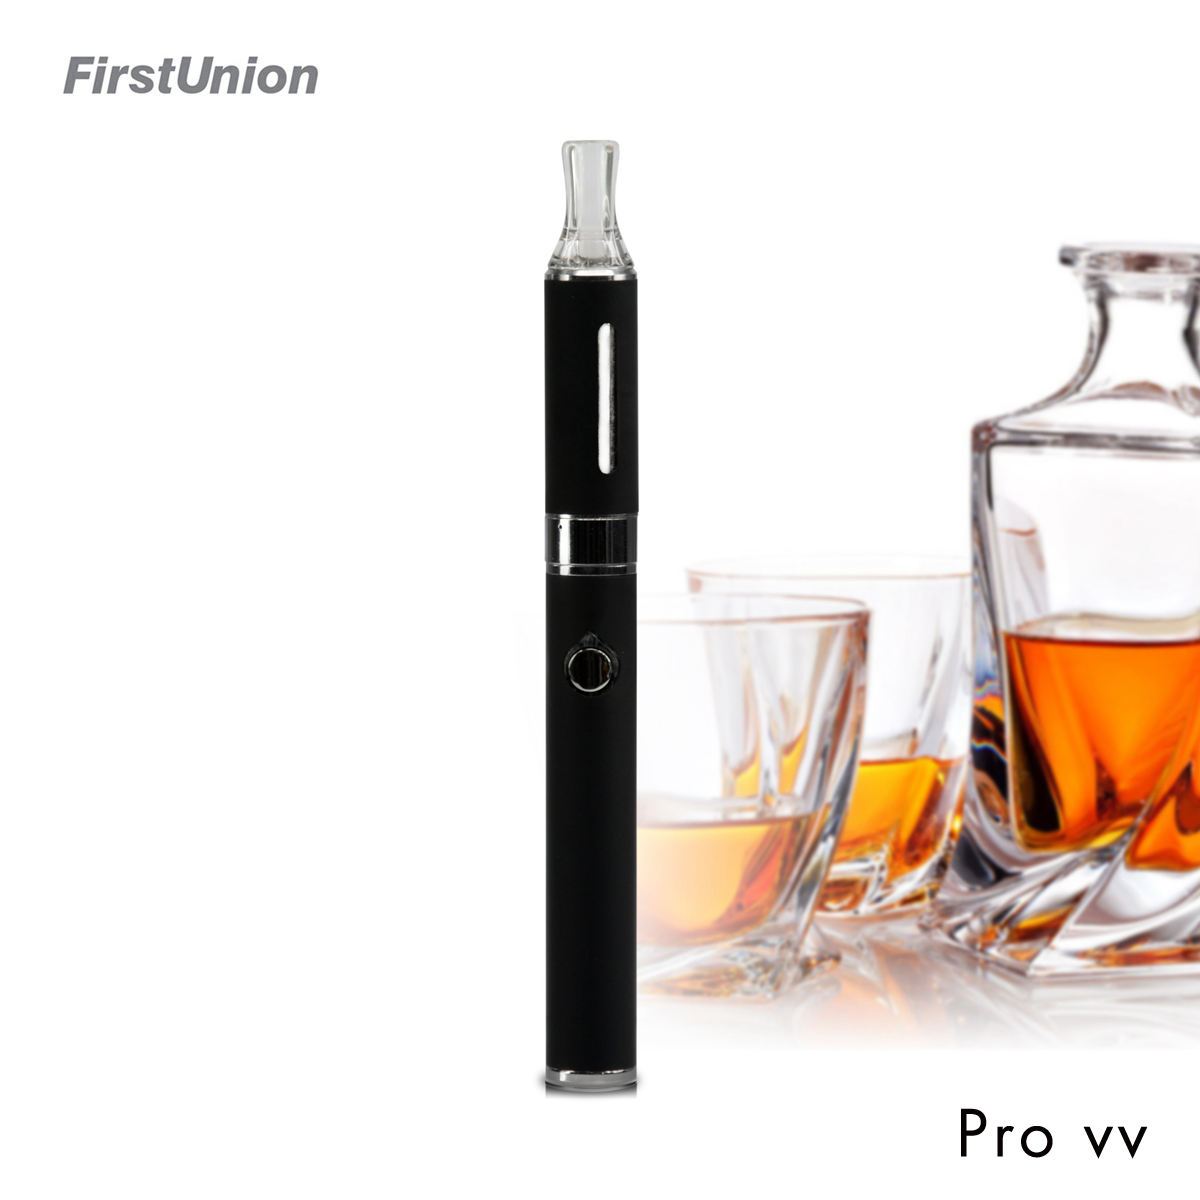 New product distributor wanted max vapor electronic cigarette Pro vv 4.2v & 5v compatible charging e hookah pen